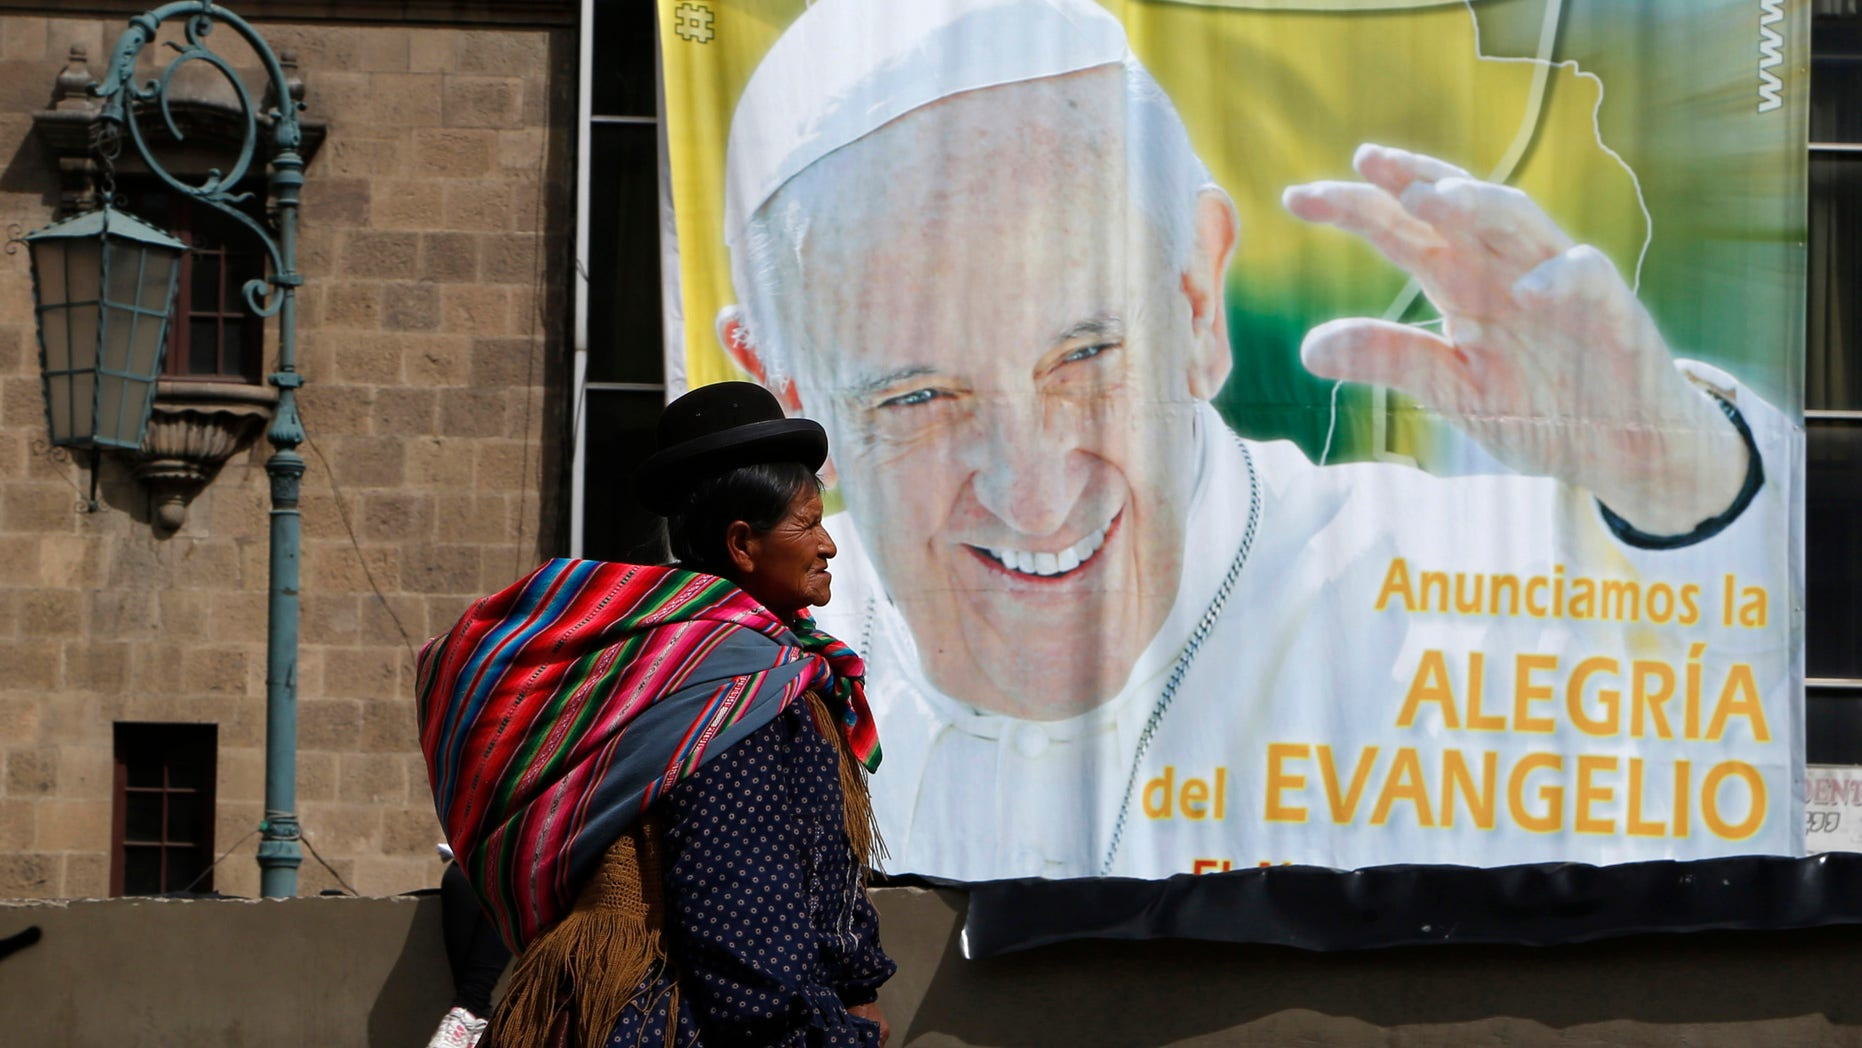 "An Aymara indigenous woman walks past a billboard featuring Pope Francis with a message that reads in Spanish: ""Announcing the joy of the Gospel"" in La Paz, Bolivia, Friday, July 3, 2015. The pope's trip to South America that includes Bolivia is set for July 5-12, though he will only spend four hours in Bolivia's capital due to the altitude, church officials say. (AP Photo/Juan Karita)"